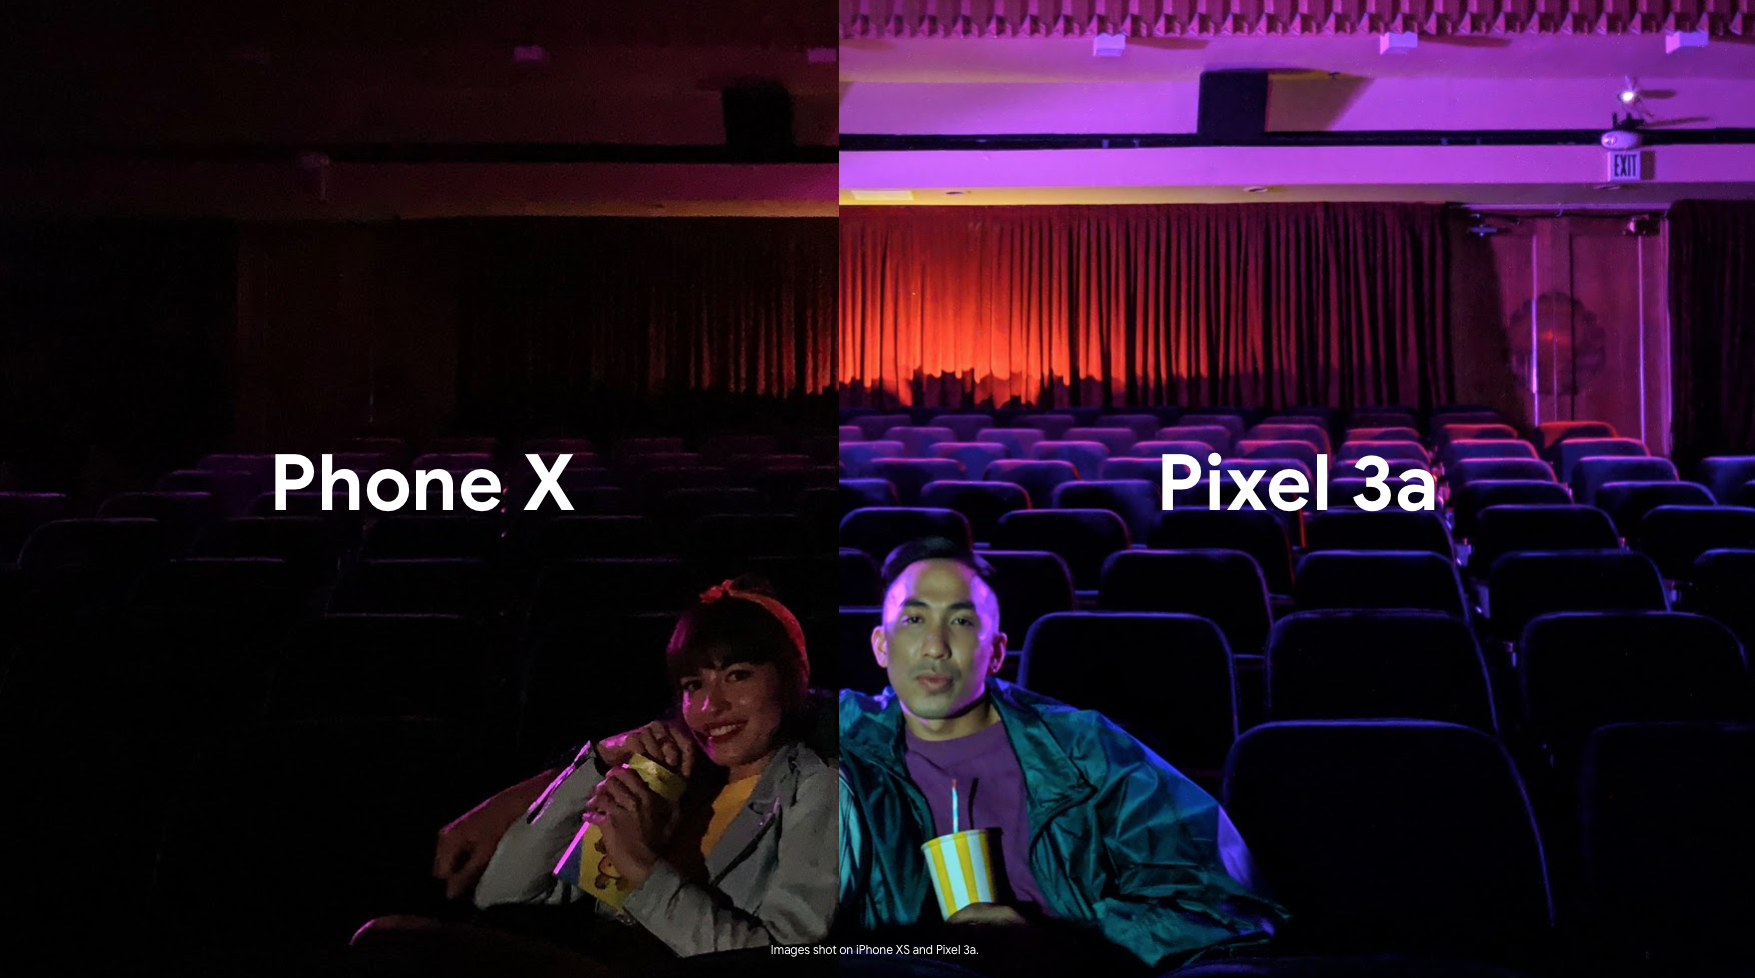 iPhone v Pixel